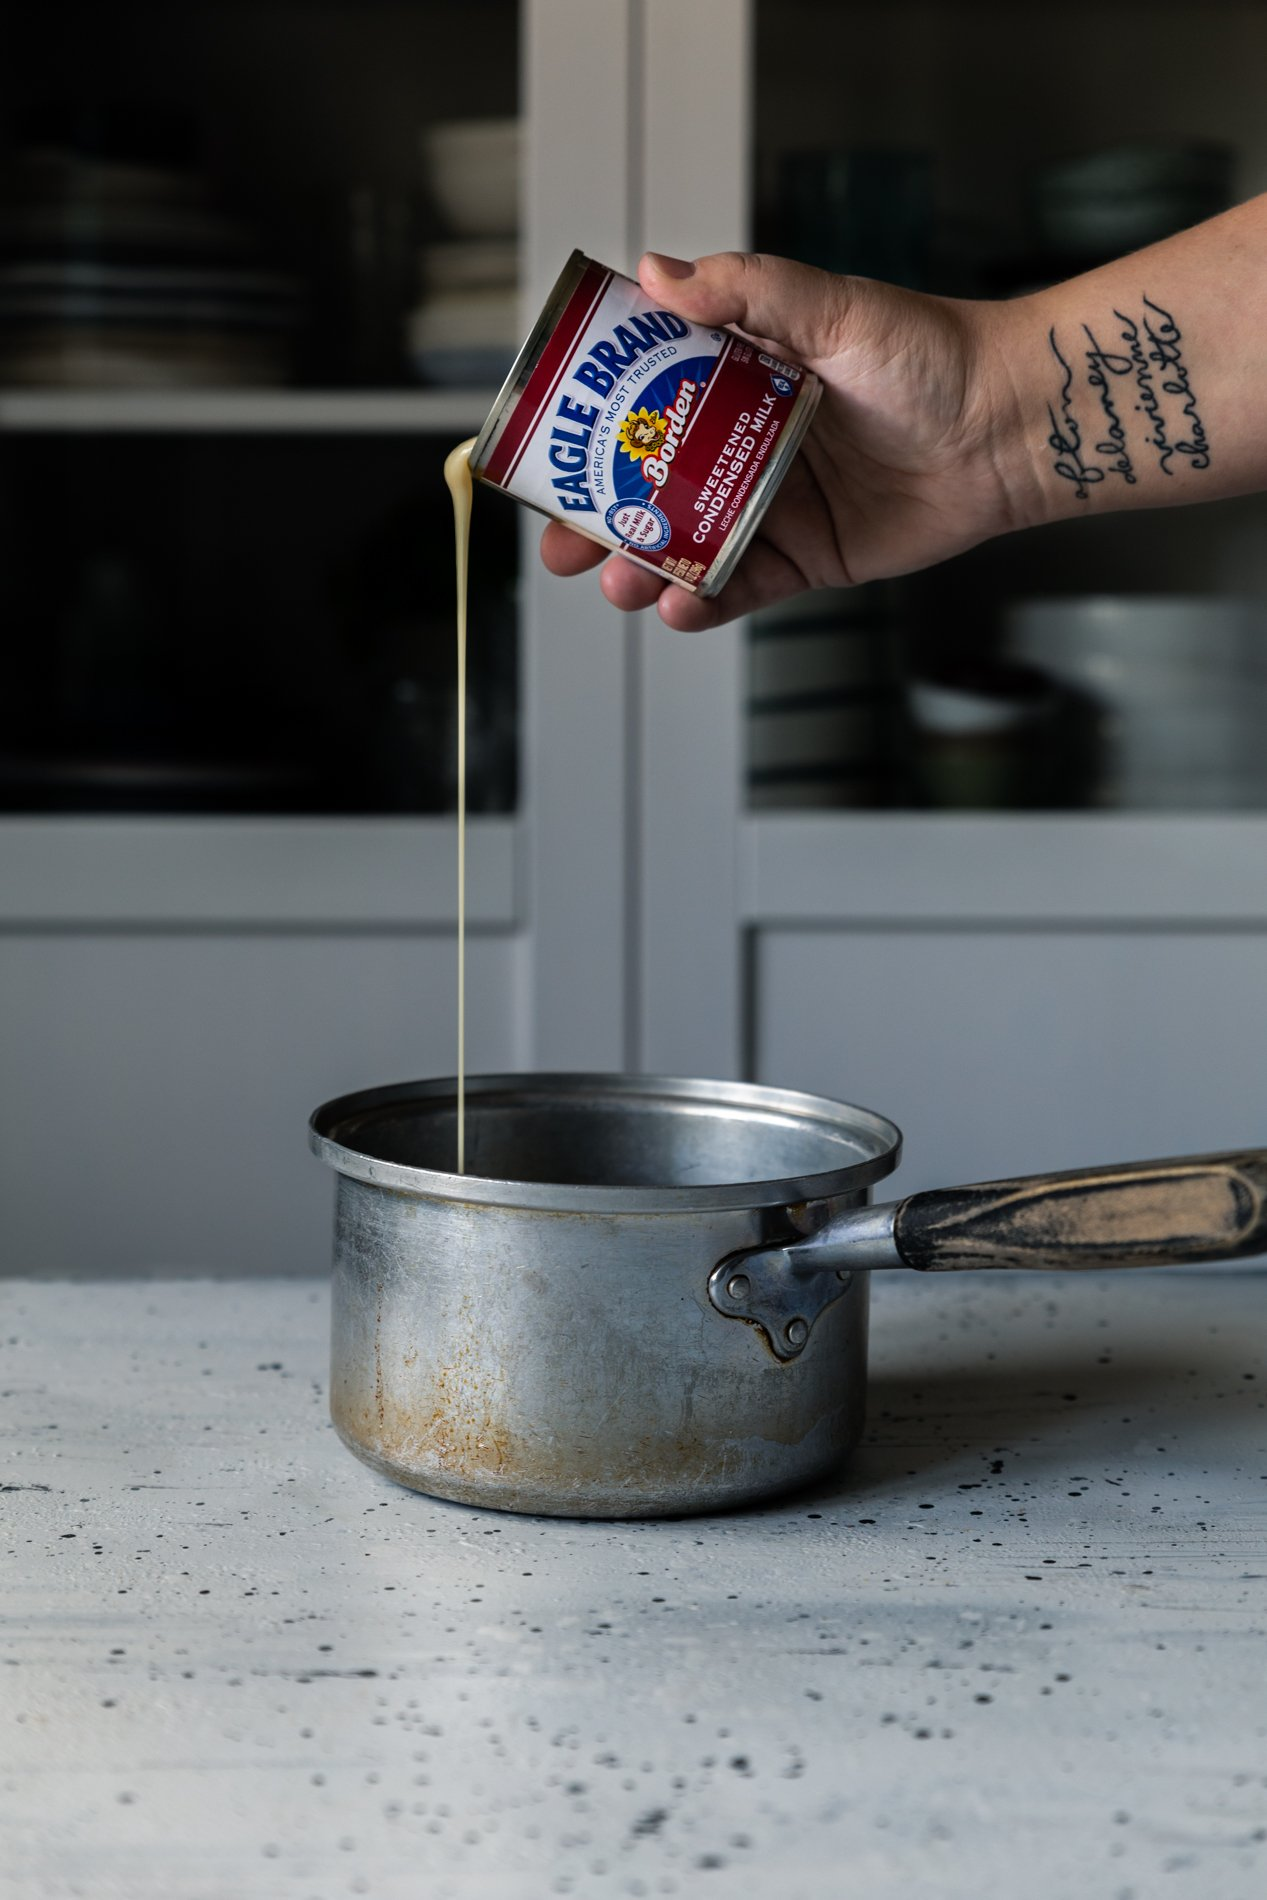 A vintage metal pot sits just below center of the image, with eagle brand sweetened condensed milk being poured into it from six inches above the pot. a hand and forearm are present in the shot, with tattoos on the inner wrist visible.